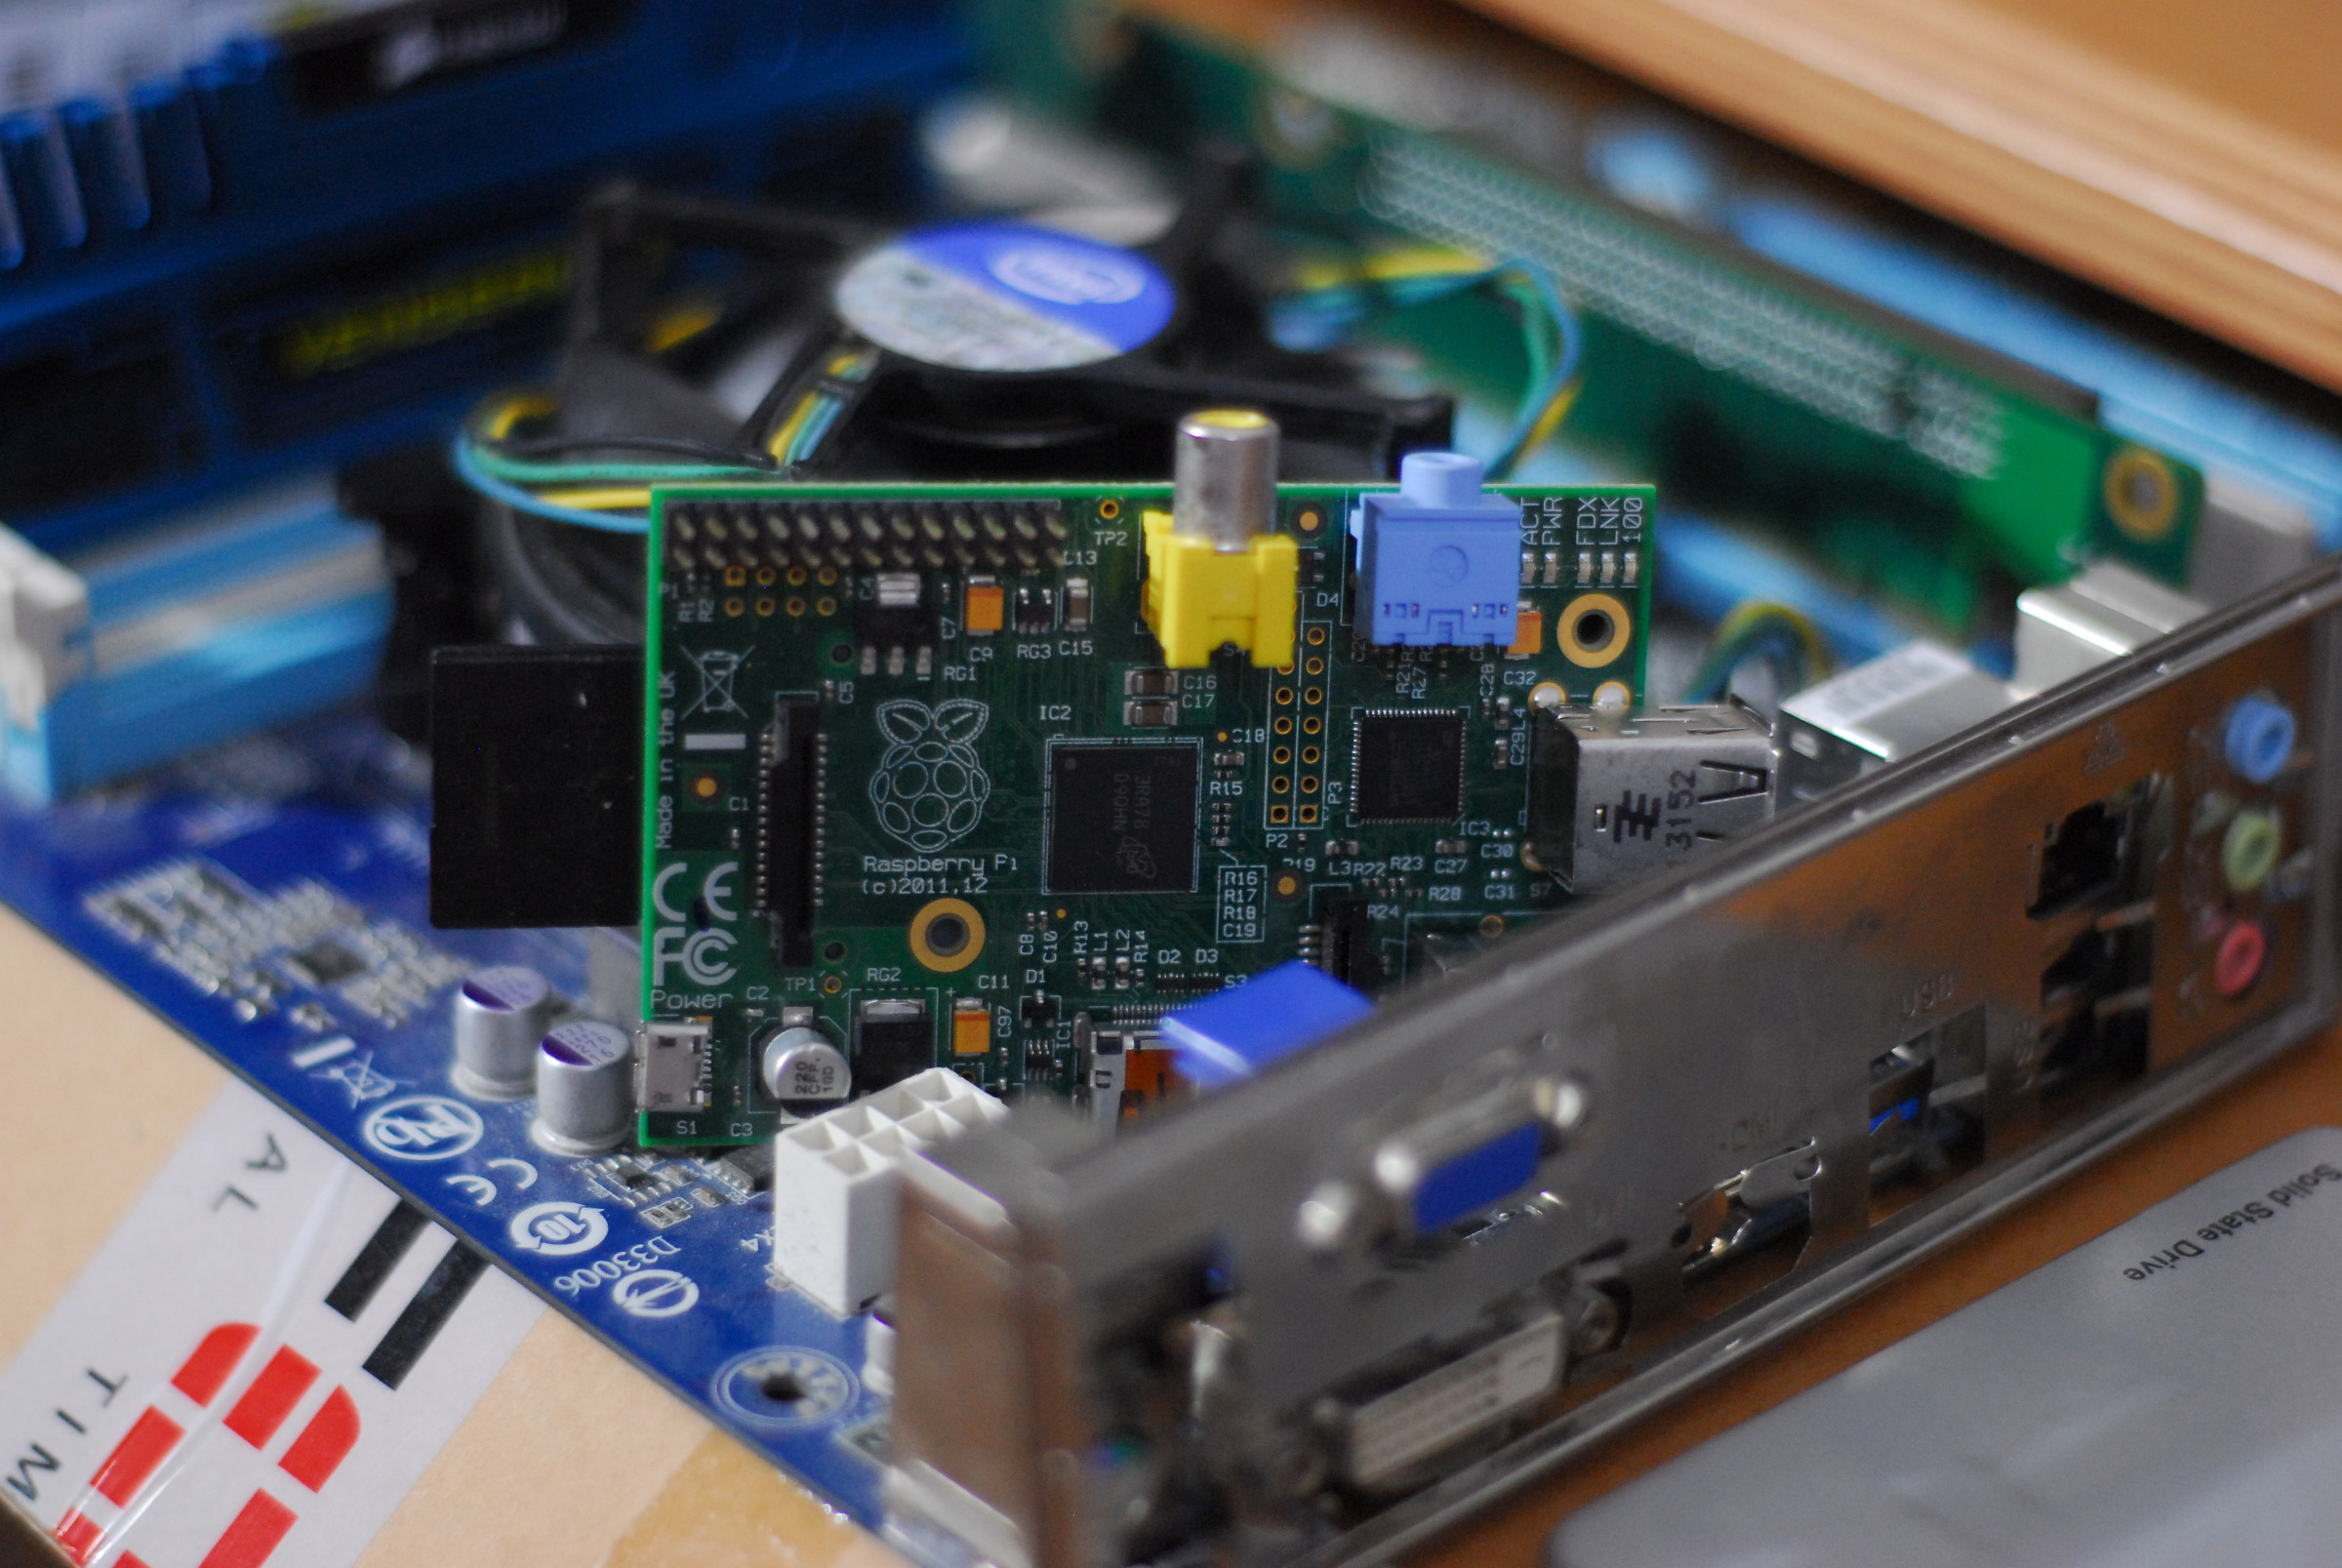 A Raspberry Pi loosely wedged on top of an ATX mainboard